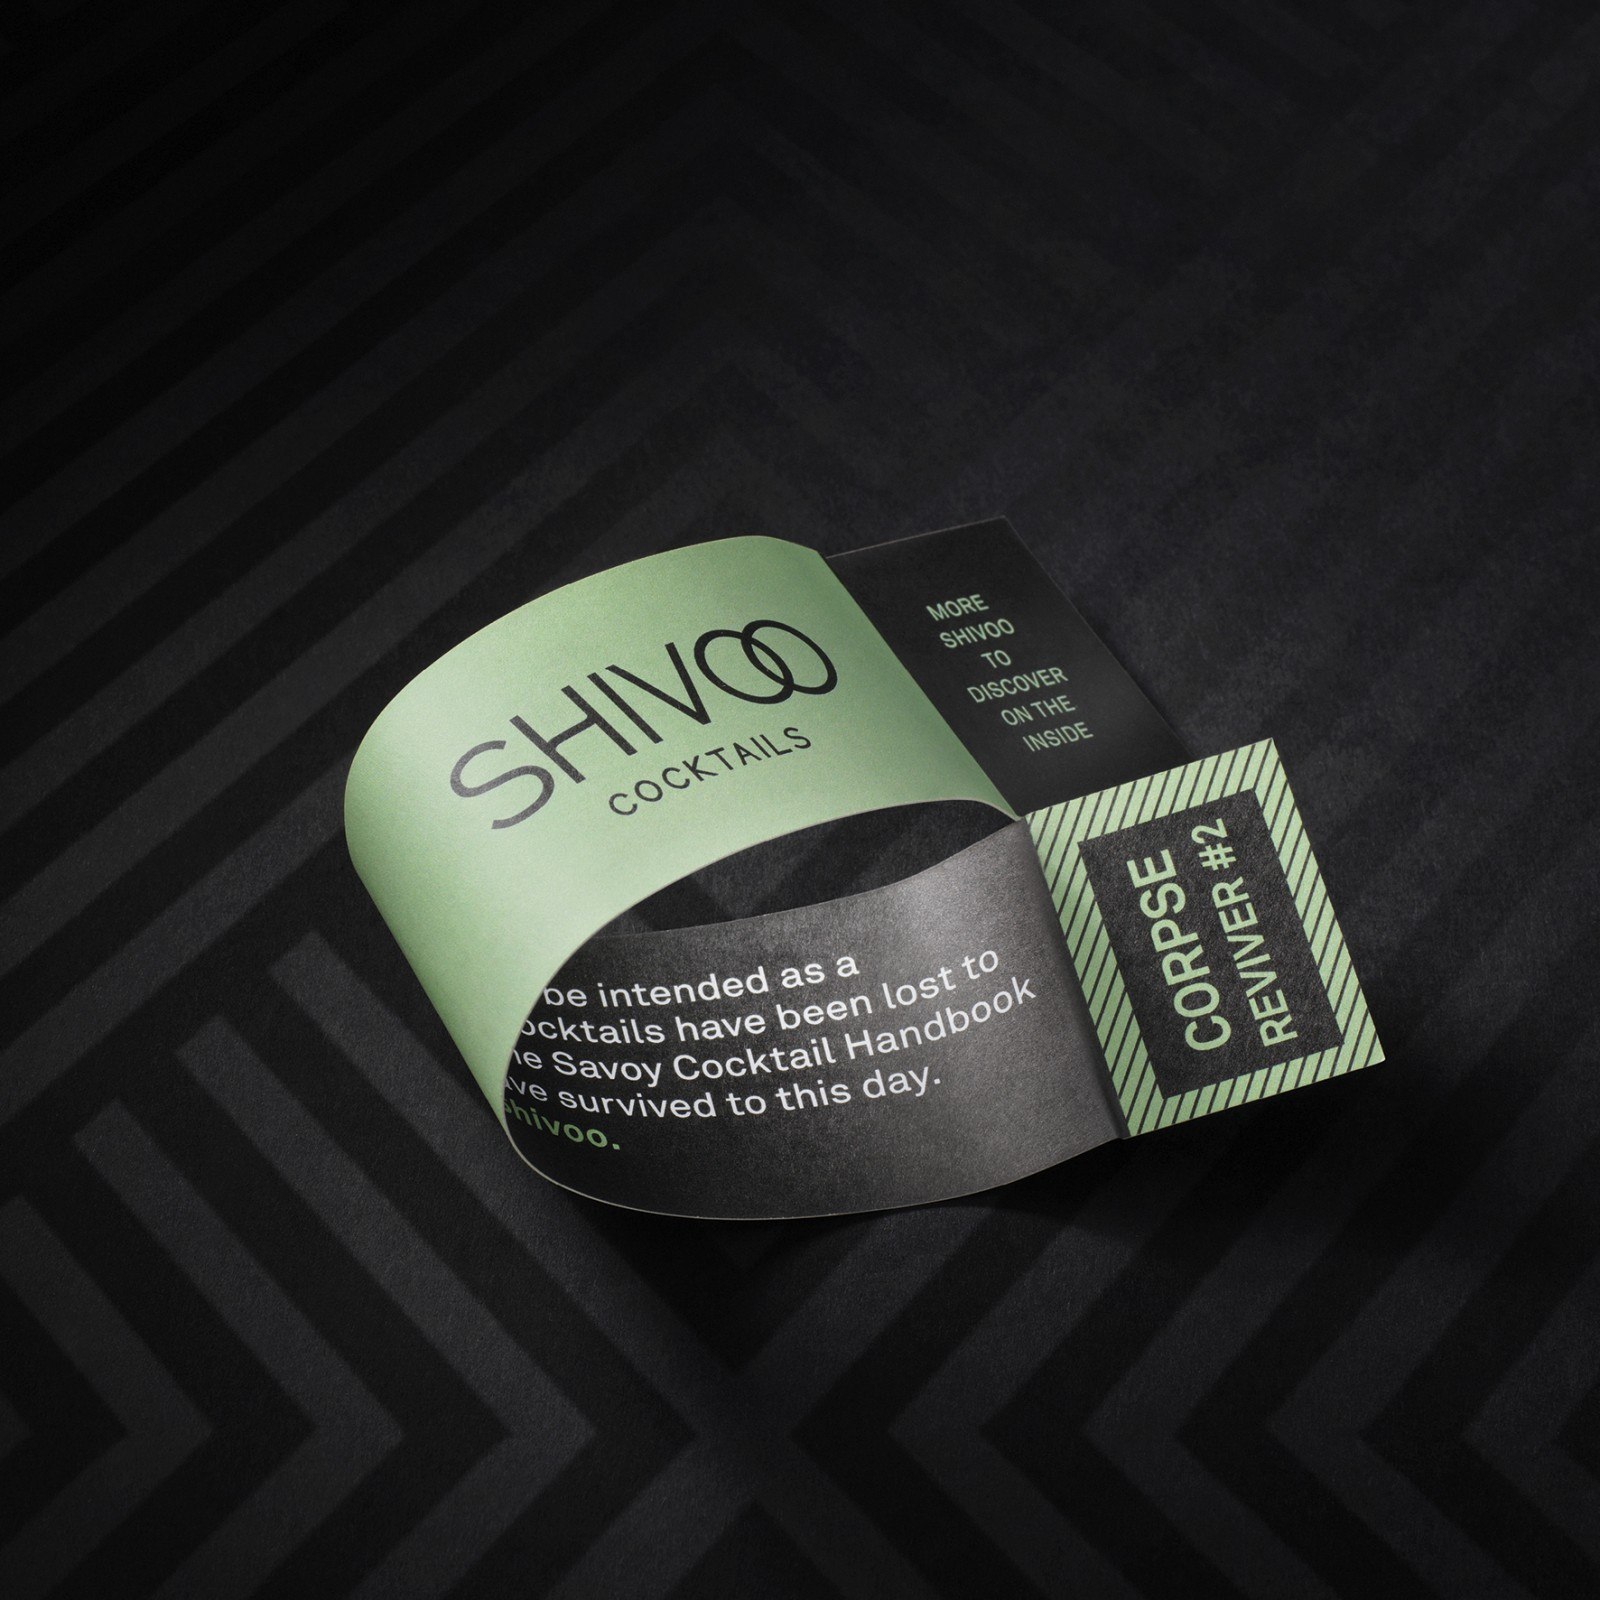 Brandnew Creates Packaging Design for The Unexpected Cocktail Shivoo